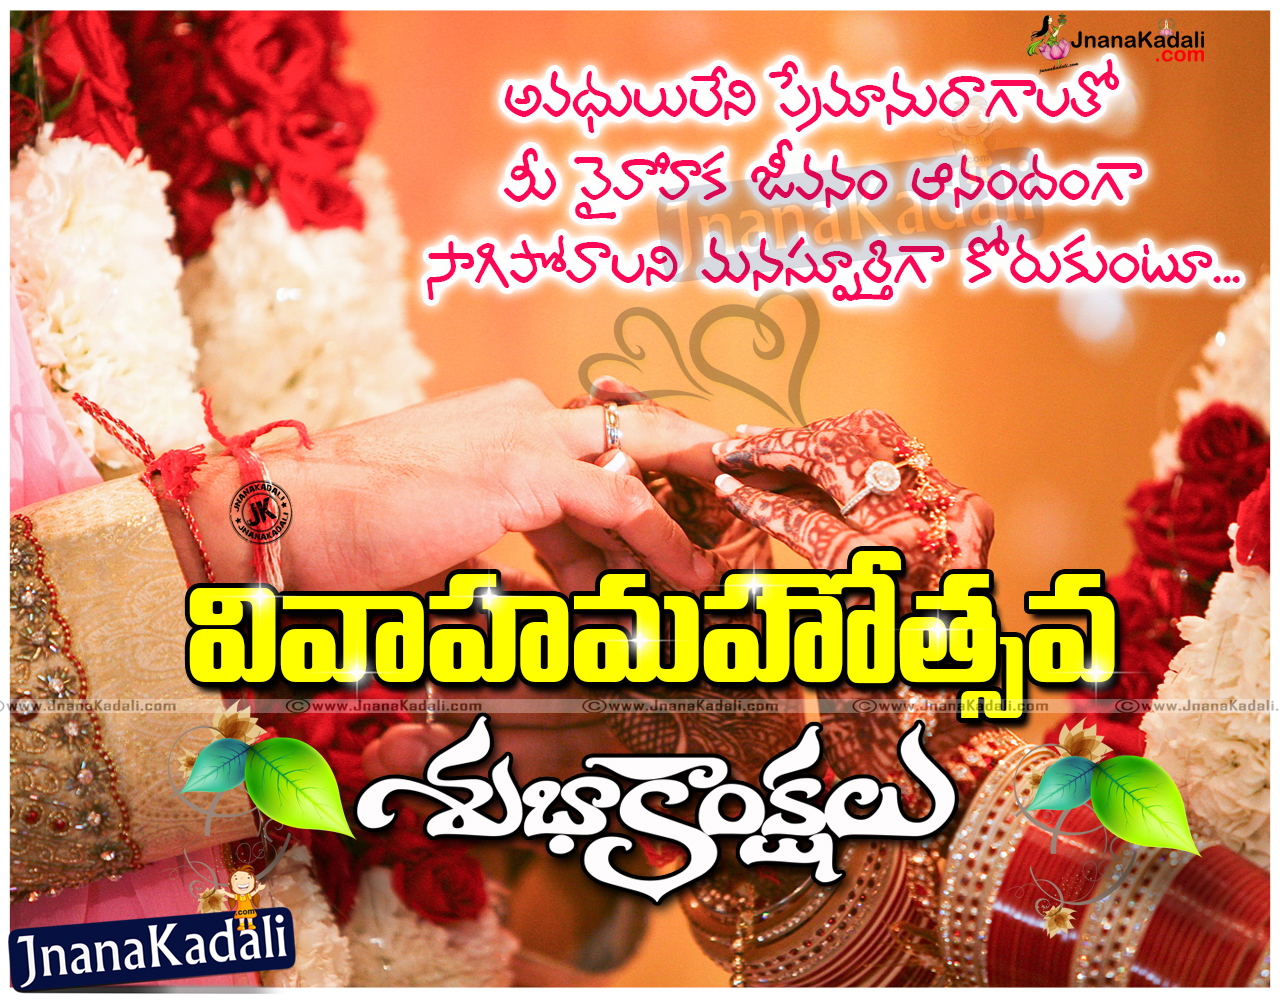 Marriage wishes quotes quotes of the day marriage wishes quotes subbareddy irugula google kristyandbryce Gallery